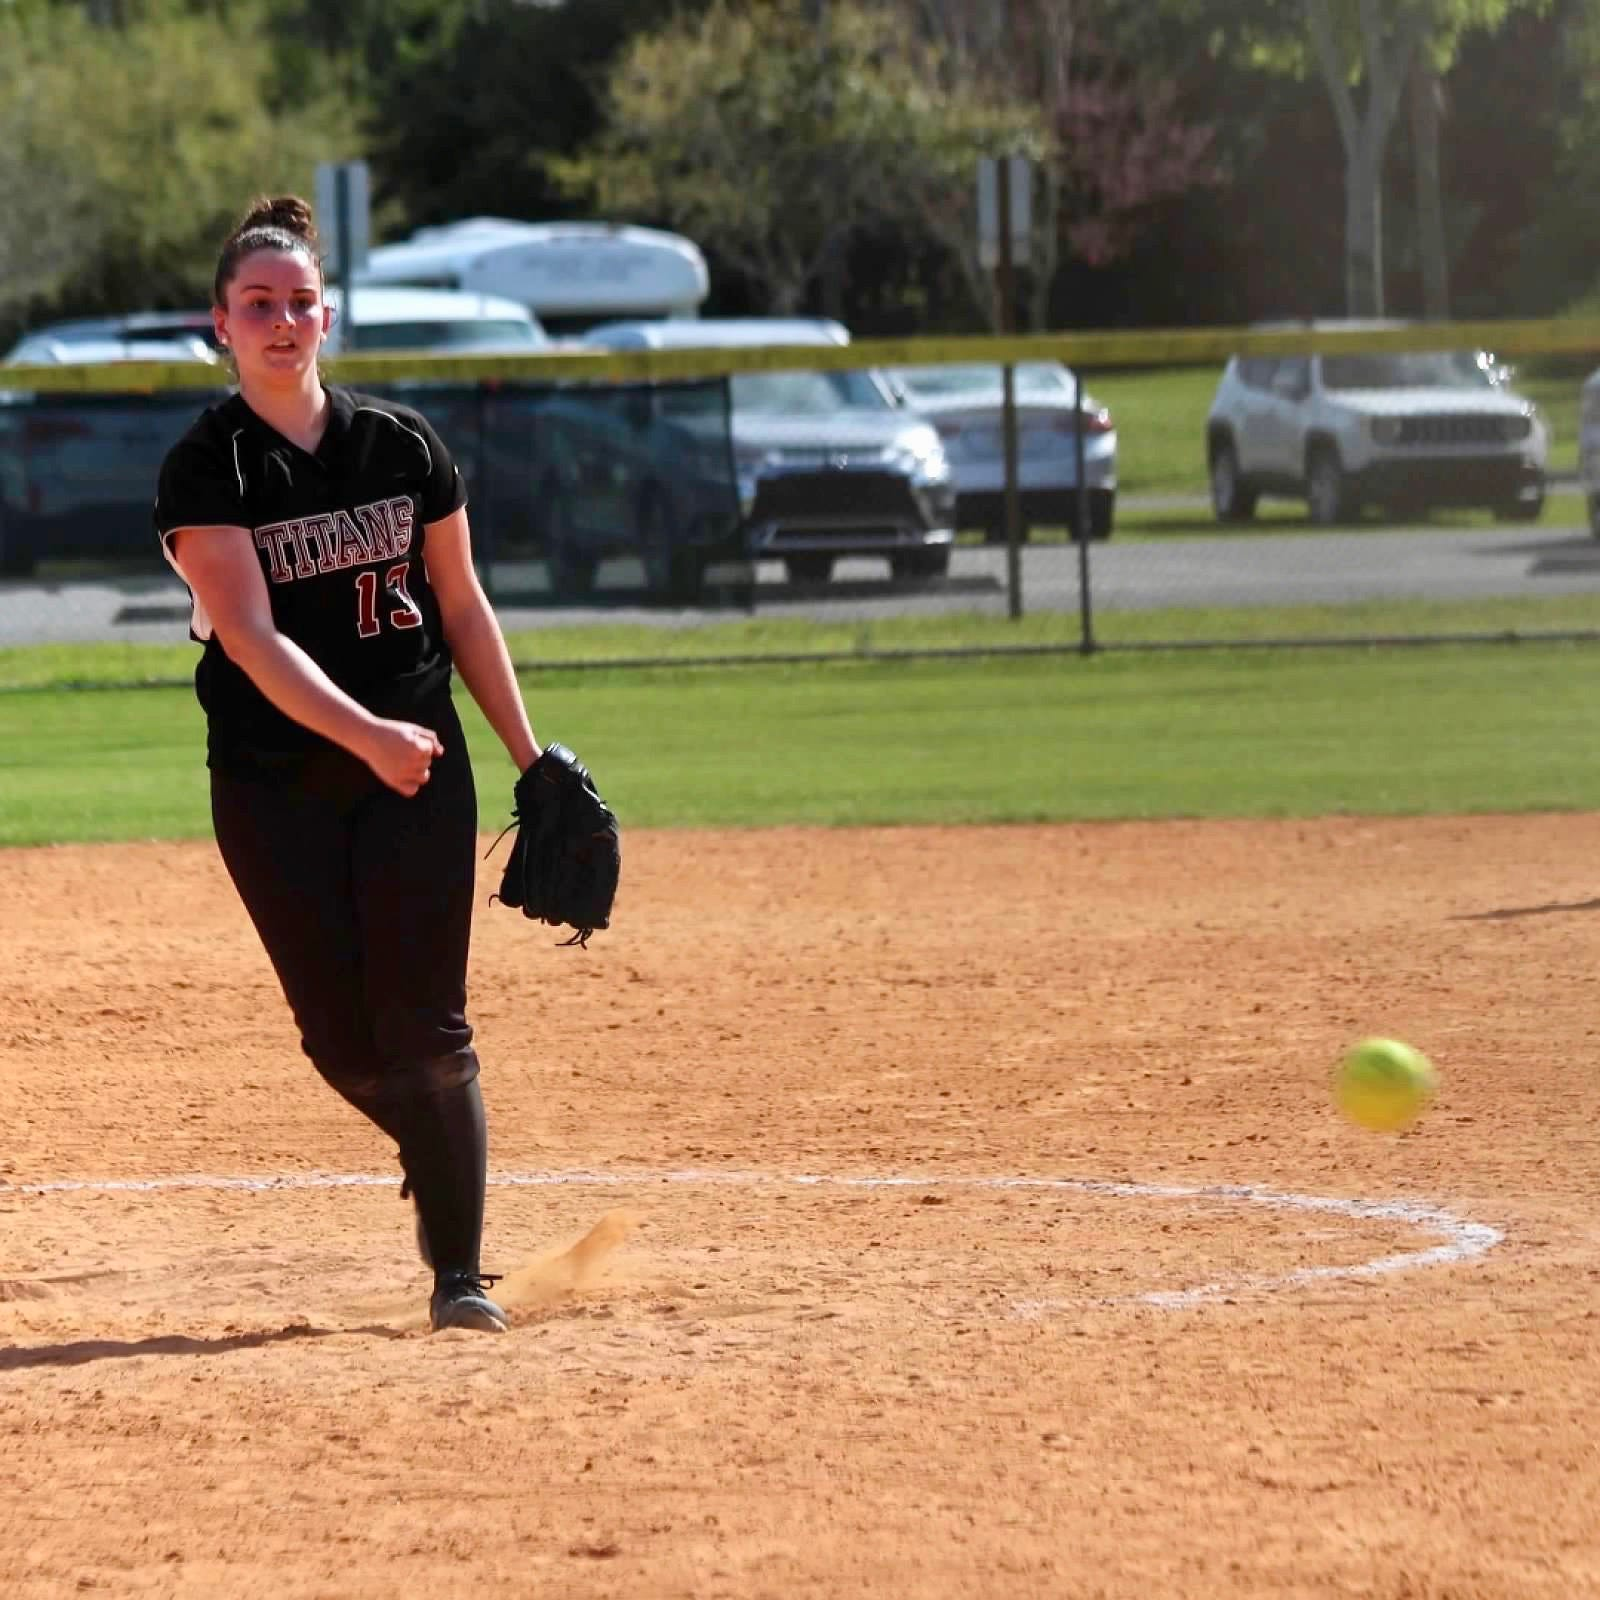 Butler pitcher Kellie Faber making history at County College of Morris